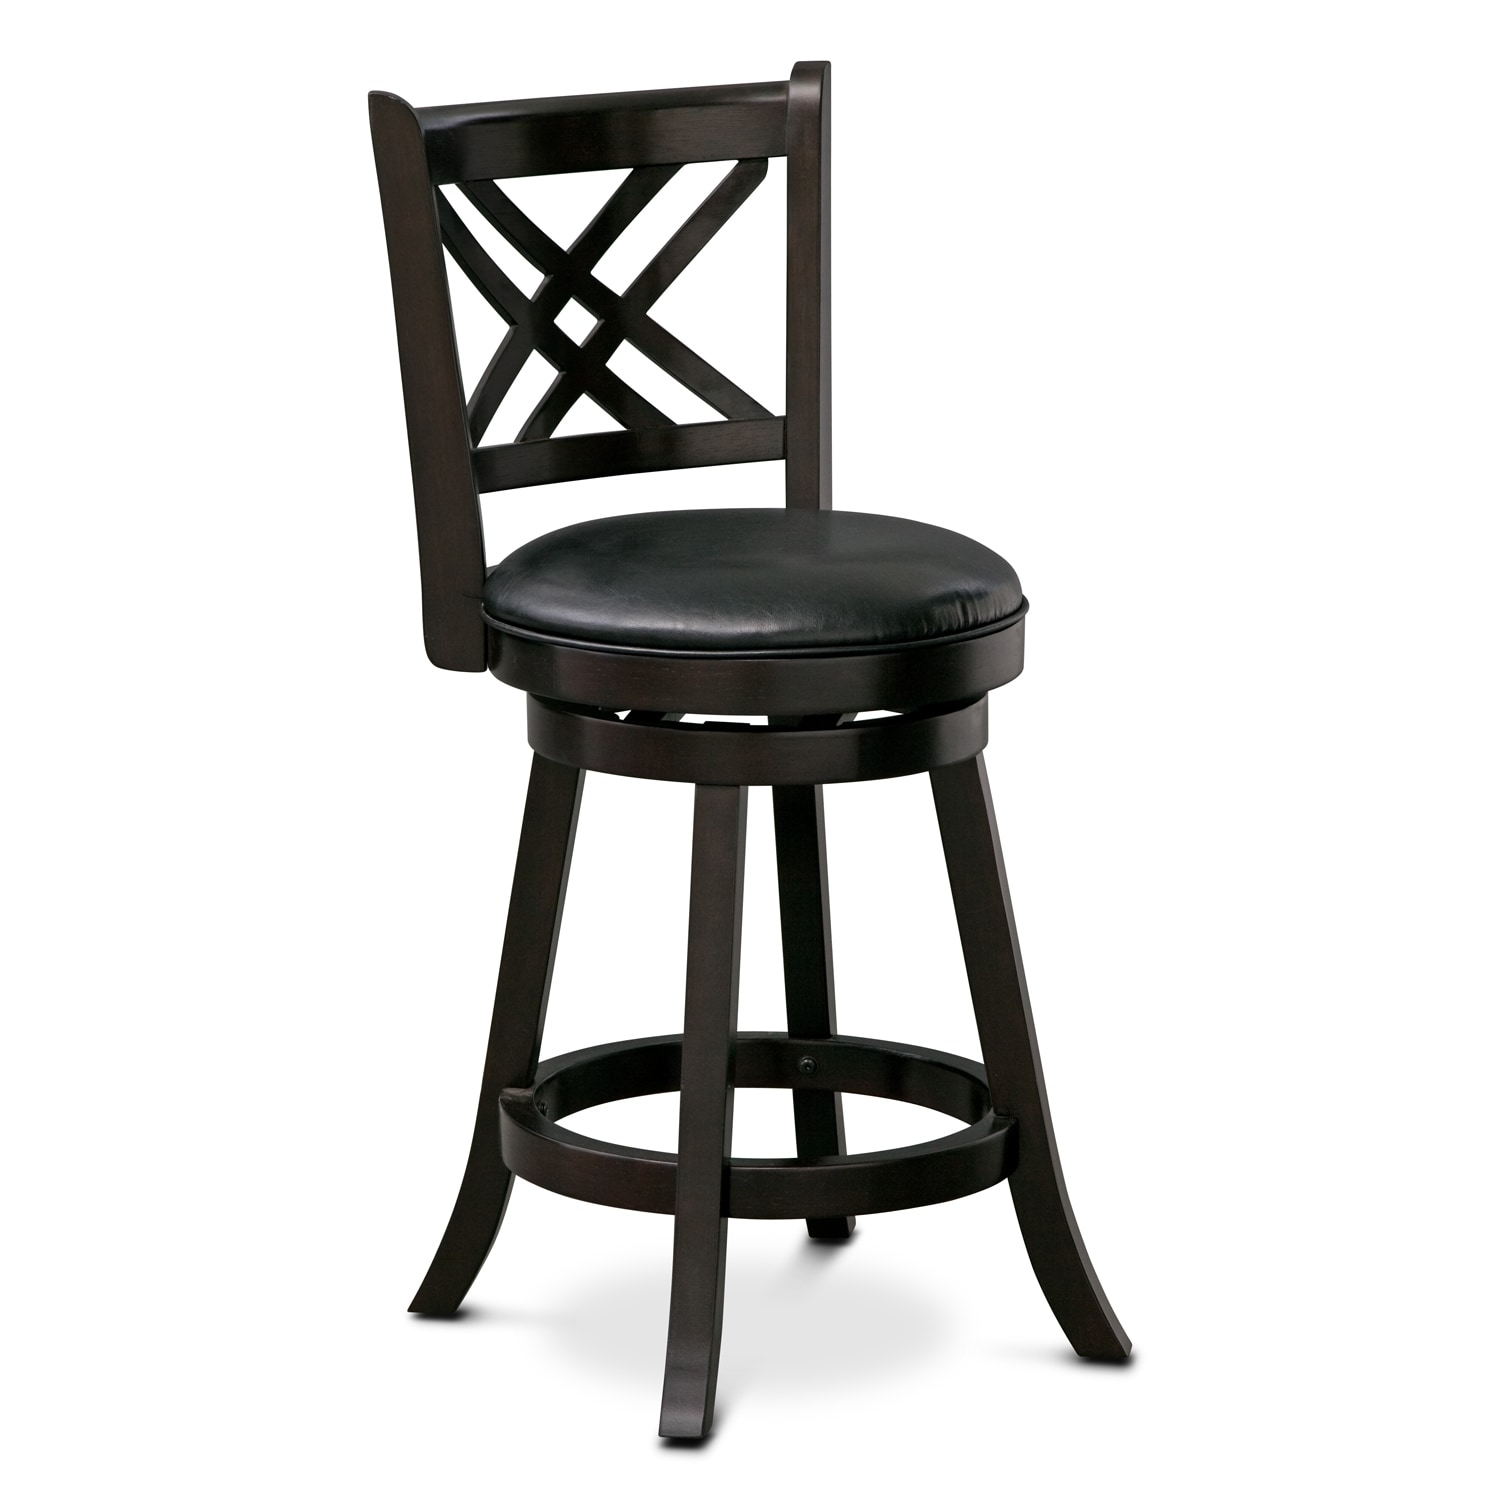 Counter Height Chairs Reilly Counter Height Stool Furniture